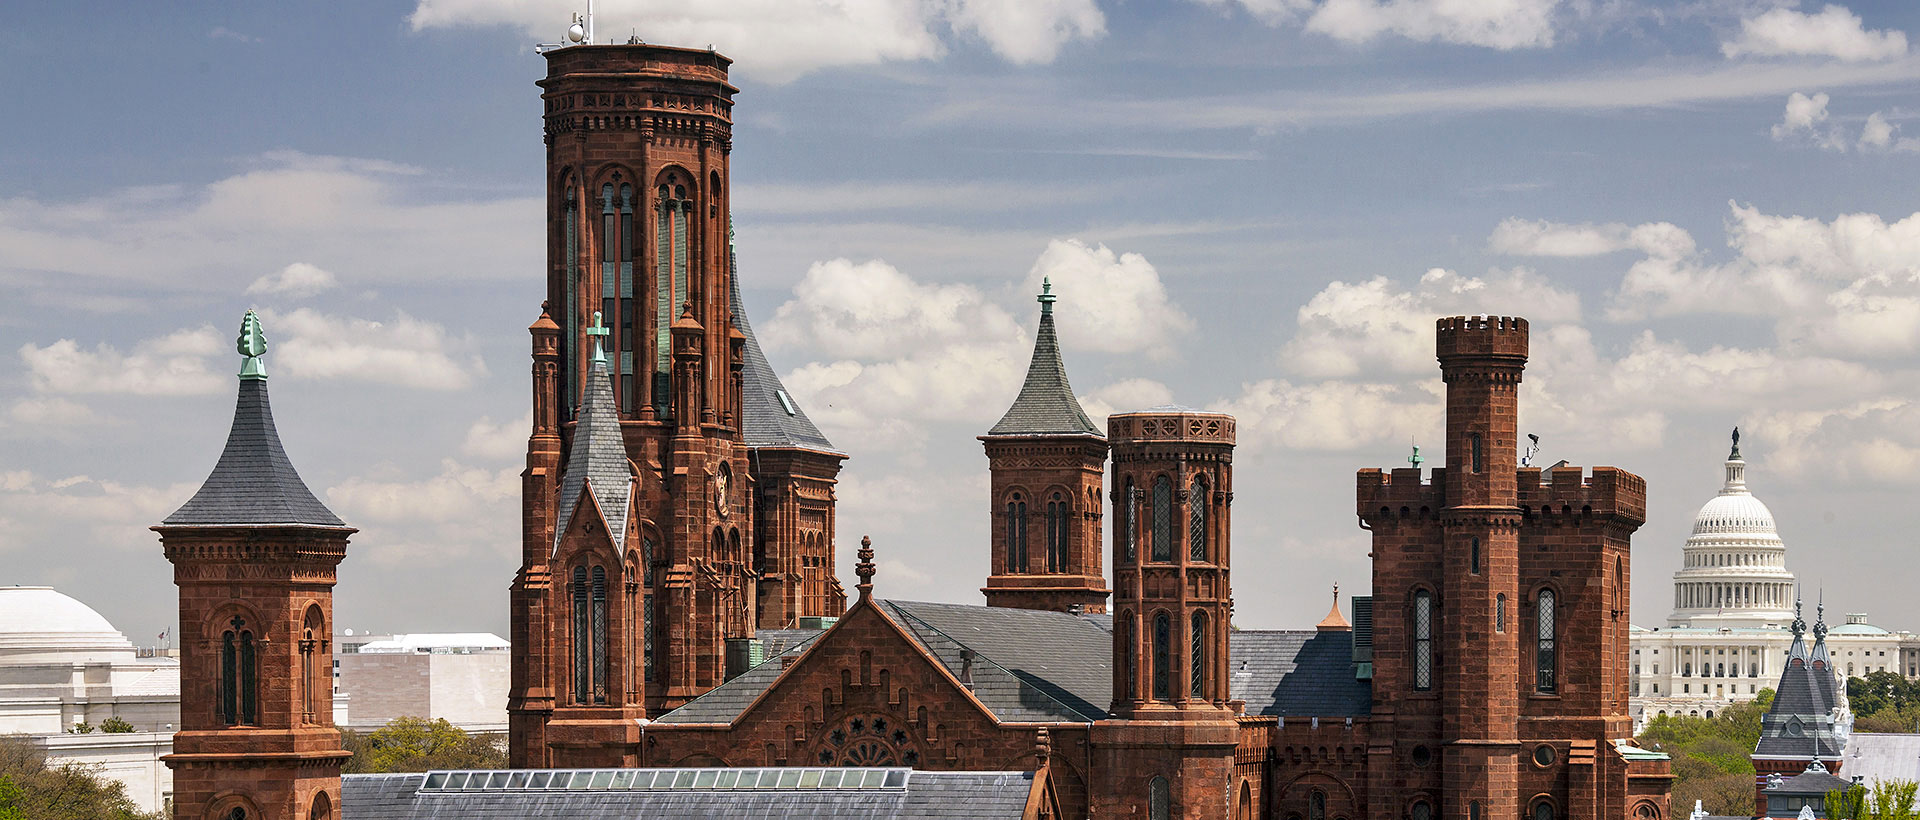 The smithsonian castle with the capitol in the background